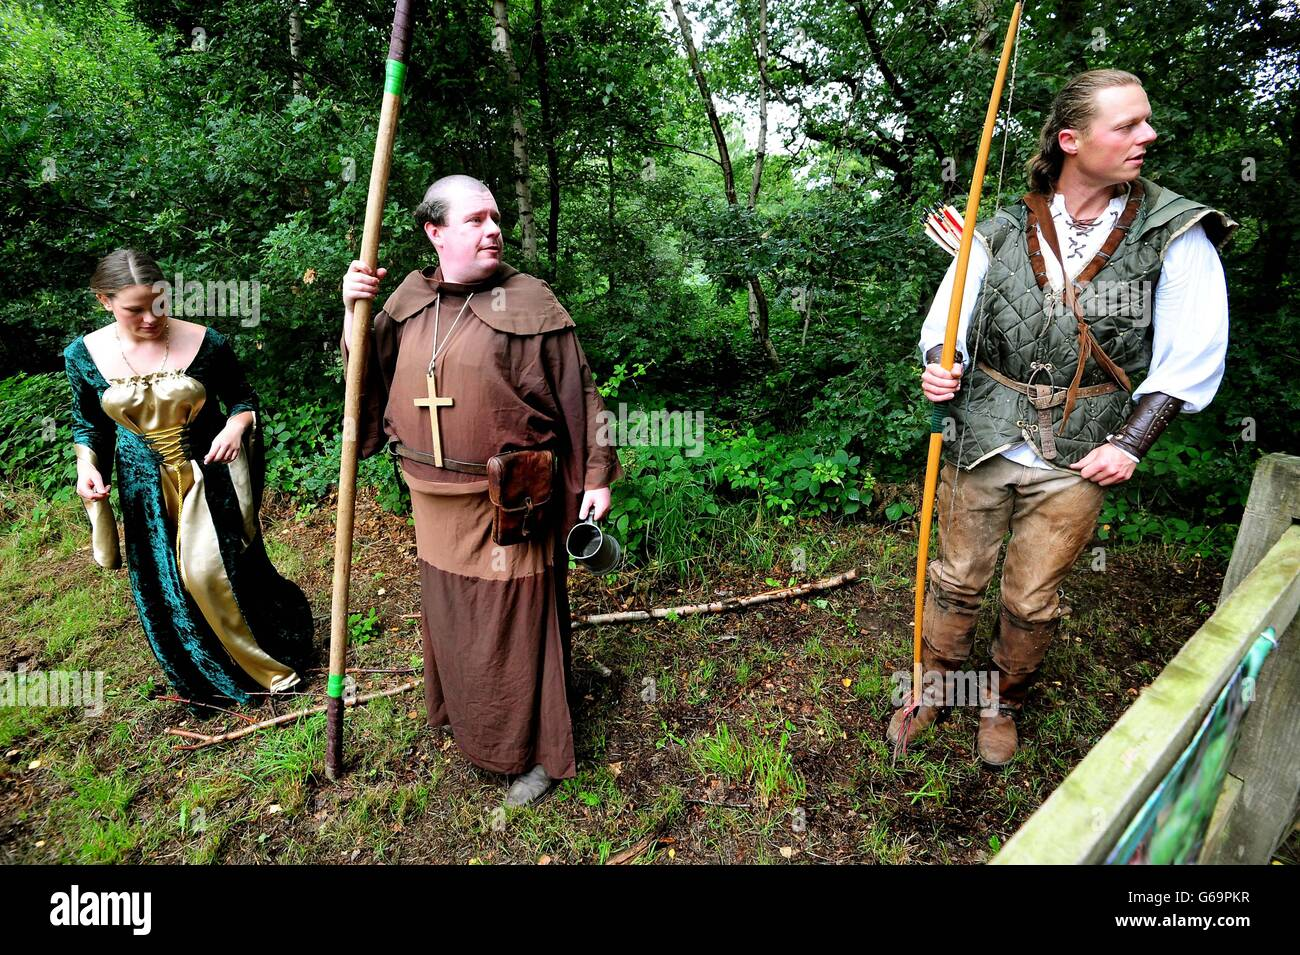 29th annual Robin Hood Festival at Sherwood - Stock Image